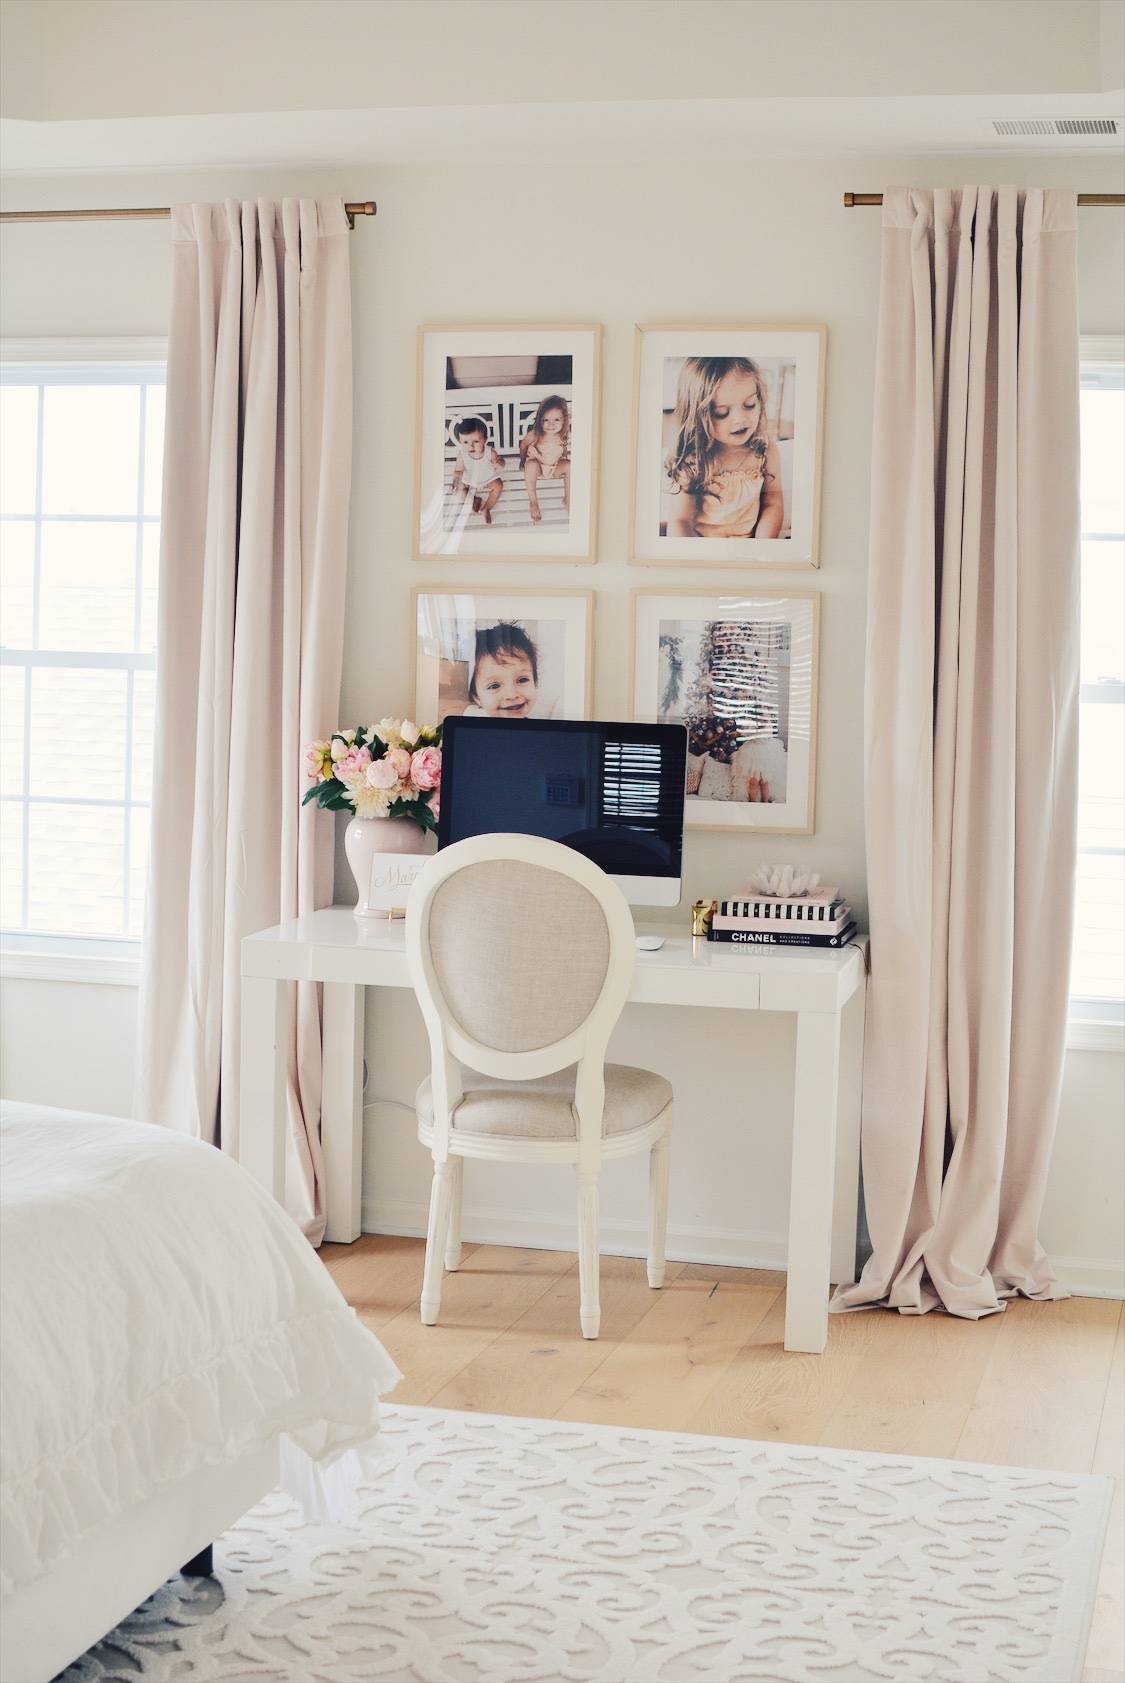 Ikea Hovsta Frames Creating A Family Gallery Wall The Pink Dream